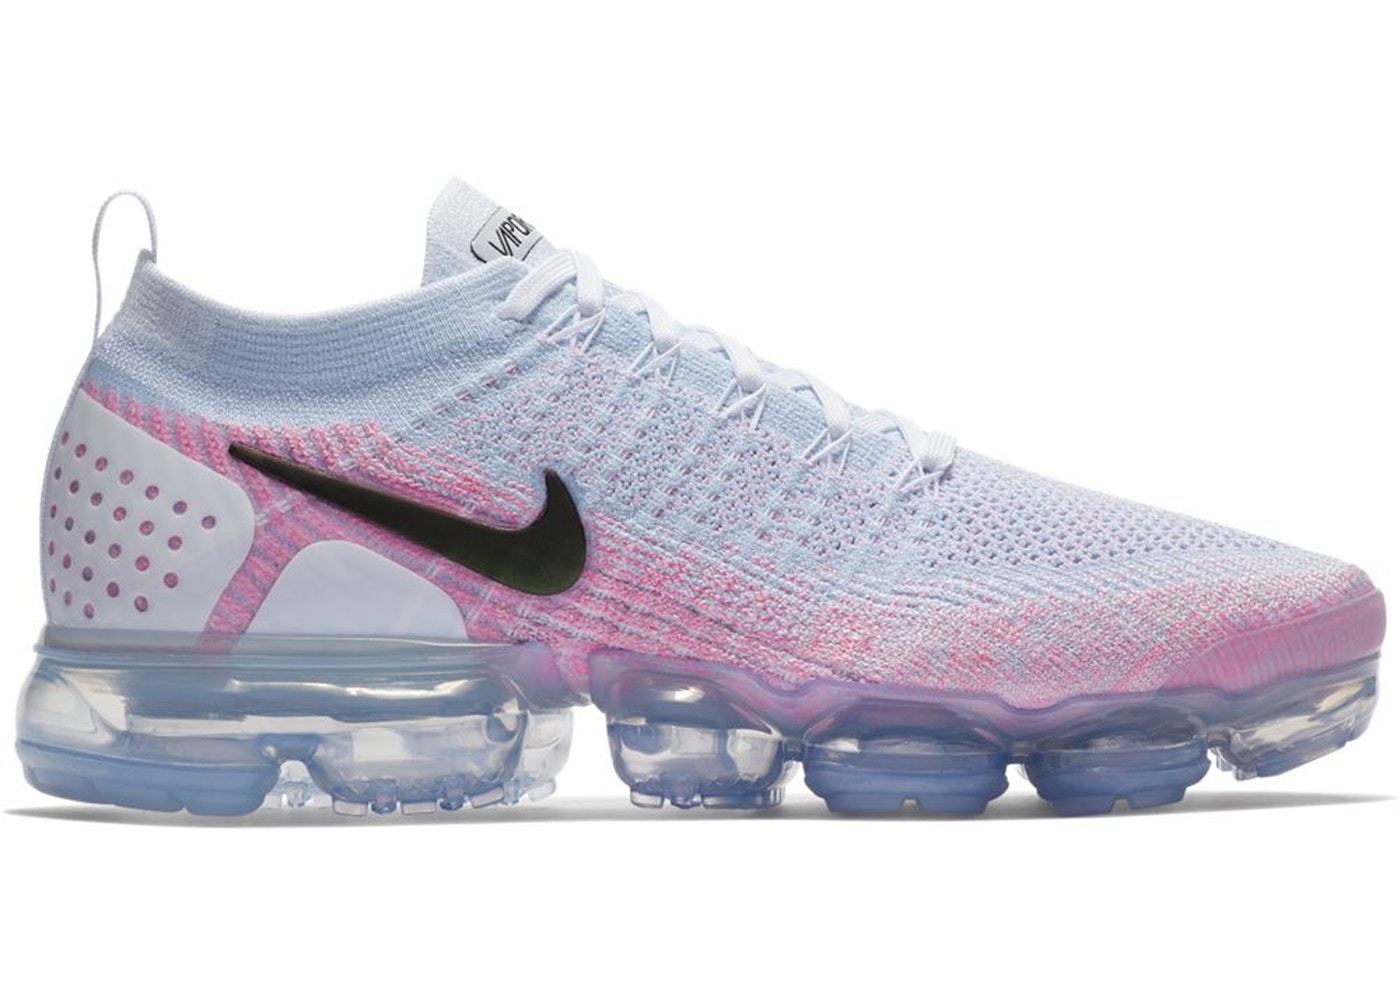 1ad97425818 Air VaporMax 2 White Hydrogen Blue - 942842-102